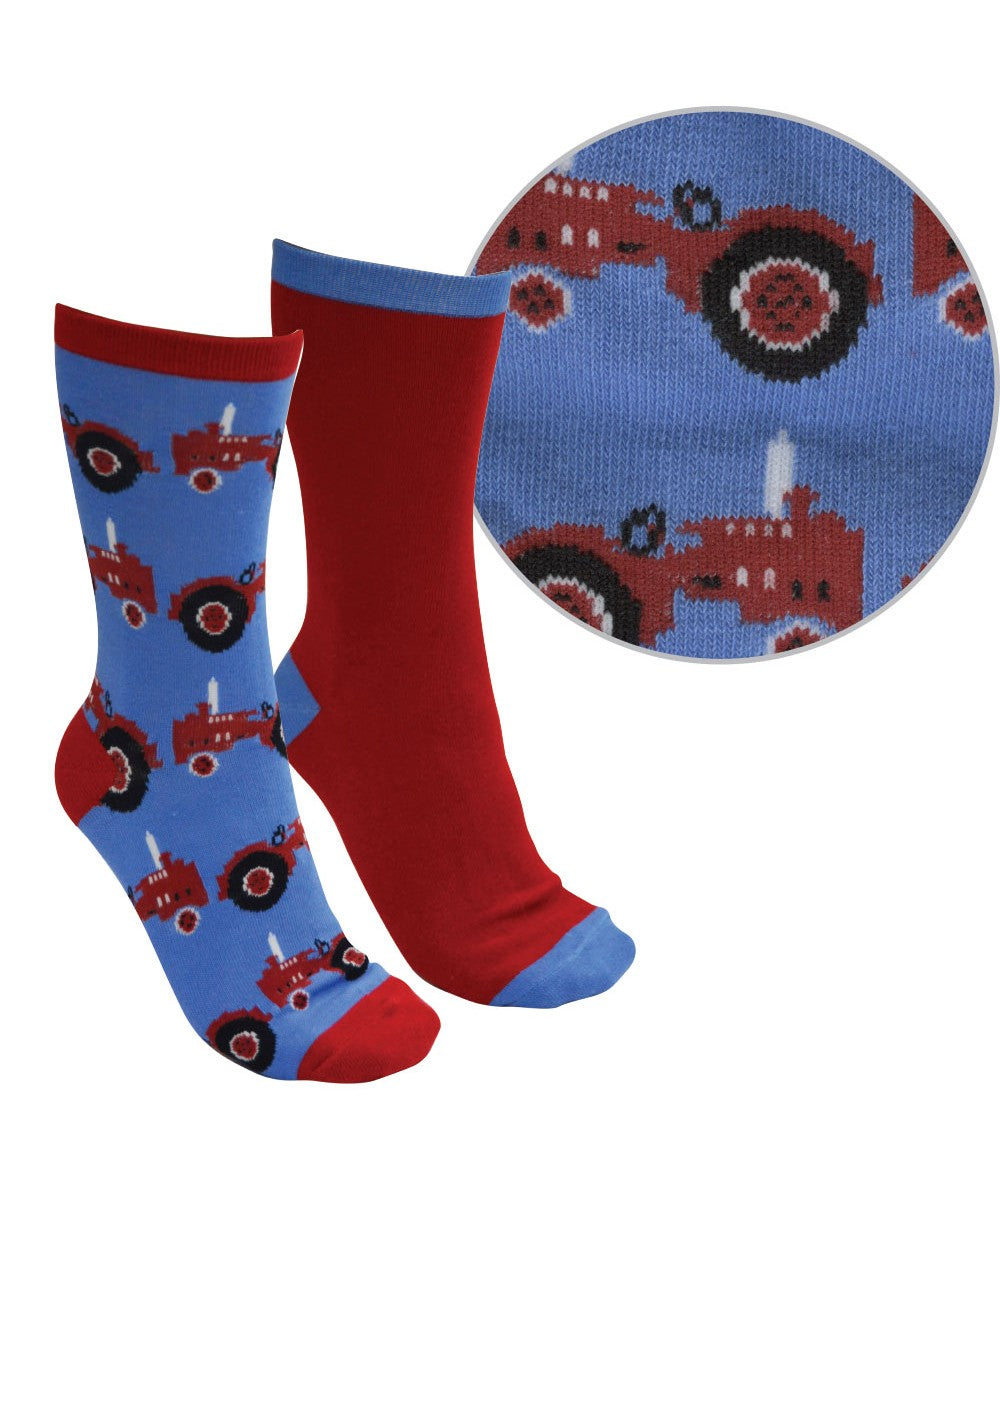 Thomas Cook | Kids | Socks | Farmyard Twin Pack | Blue/Red - BK8 Outfitters Australia